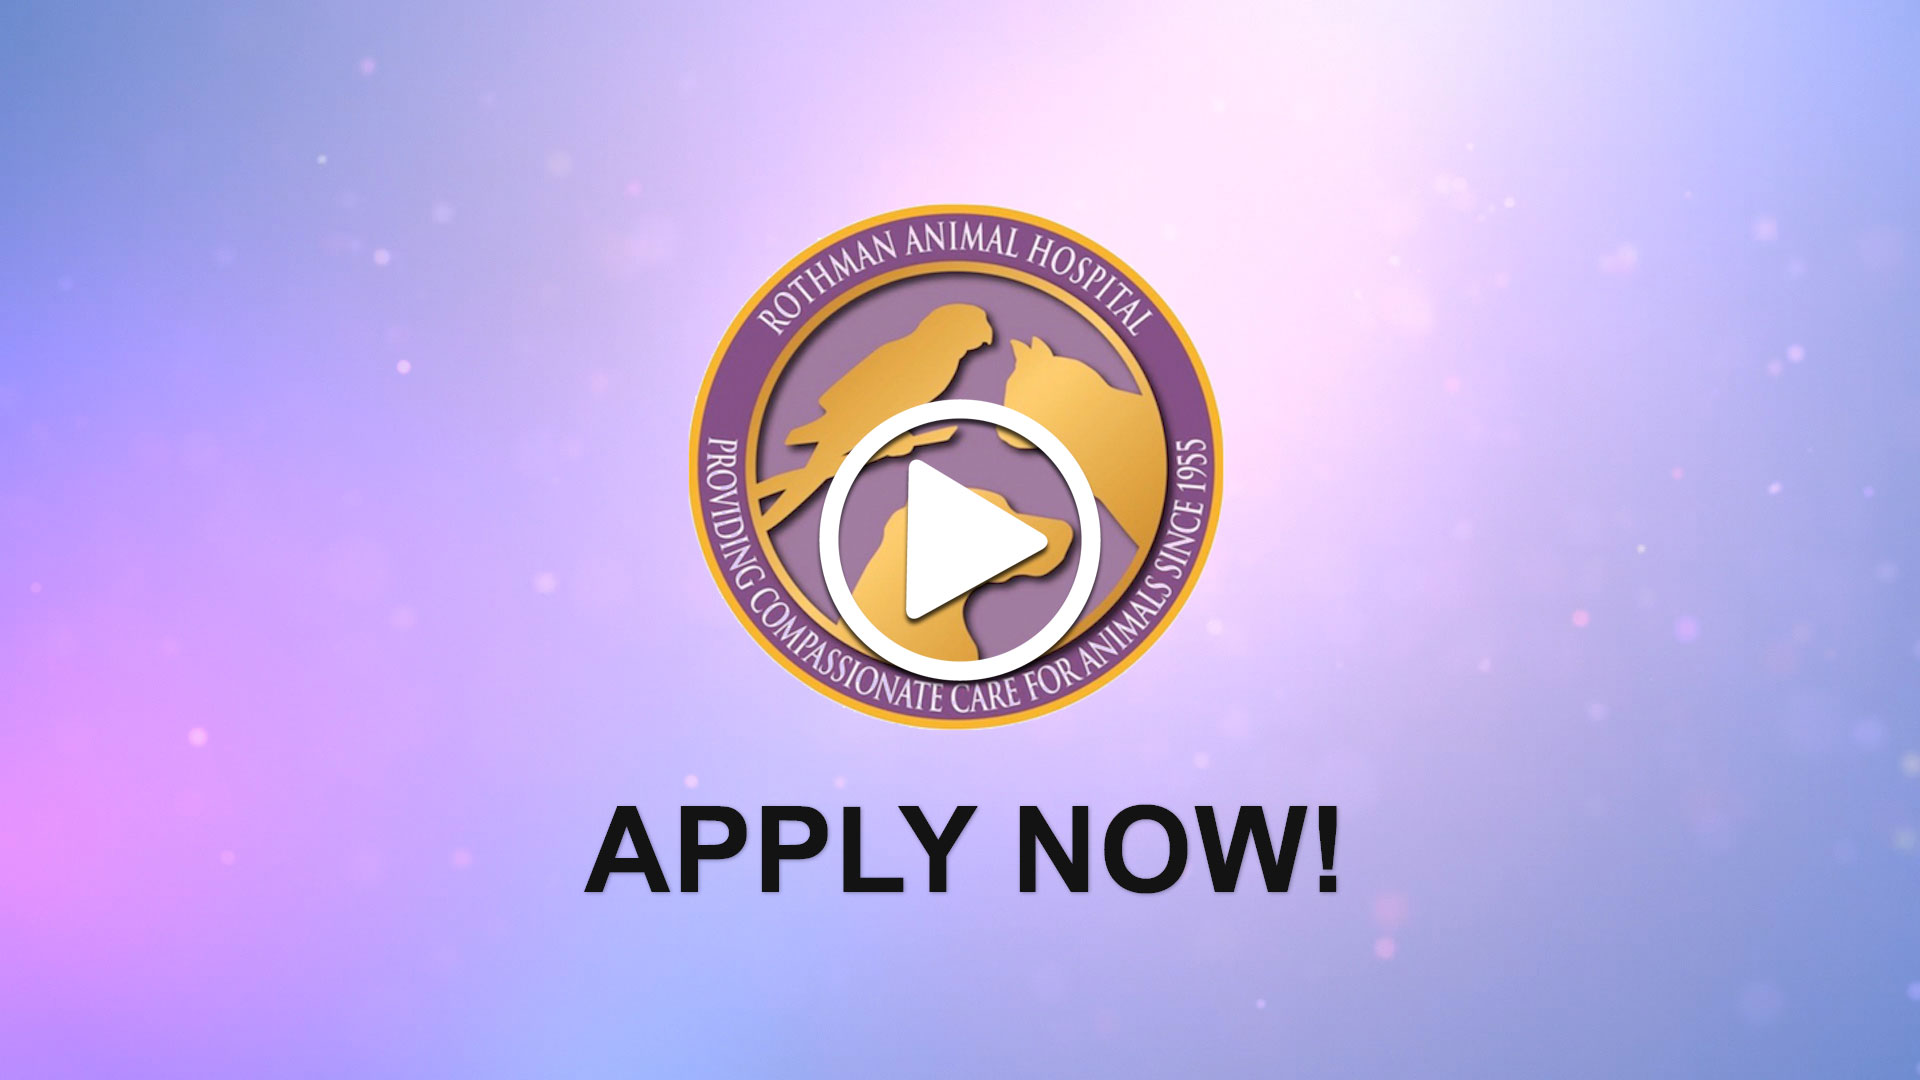 Watch our careers video for available job opening Associate Veterinarian in Collingswood, New Jersey